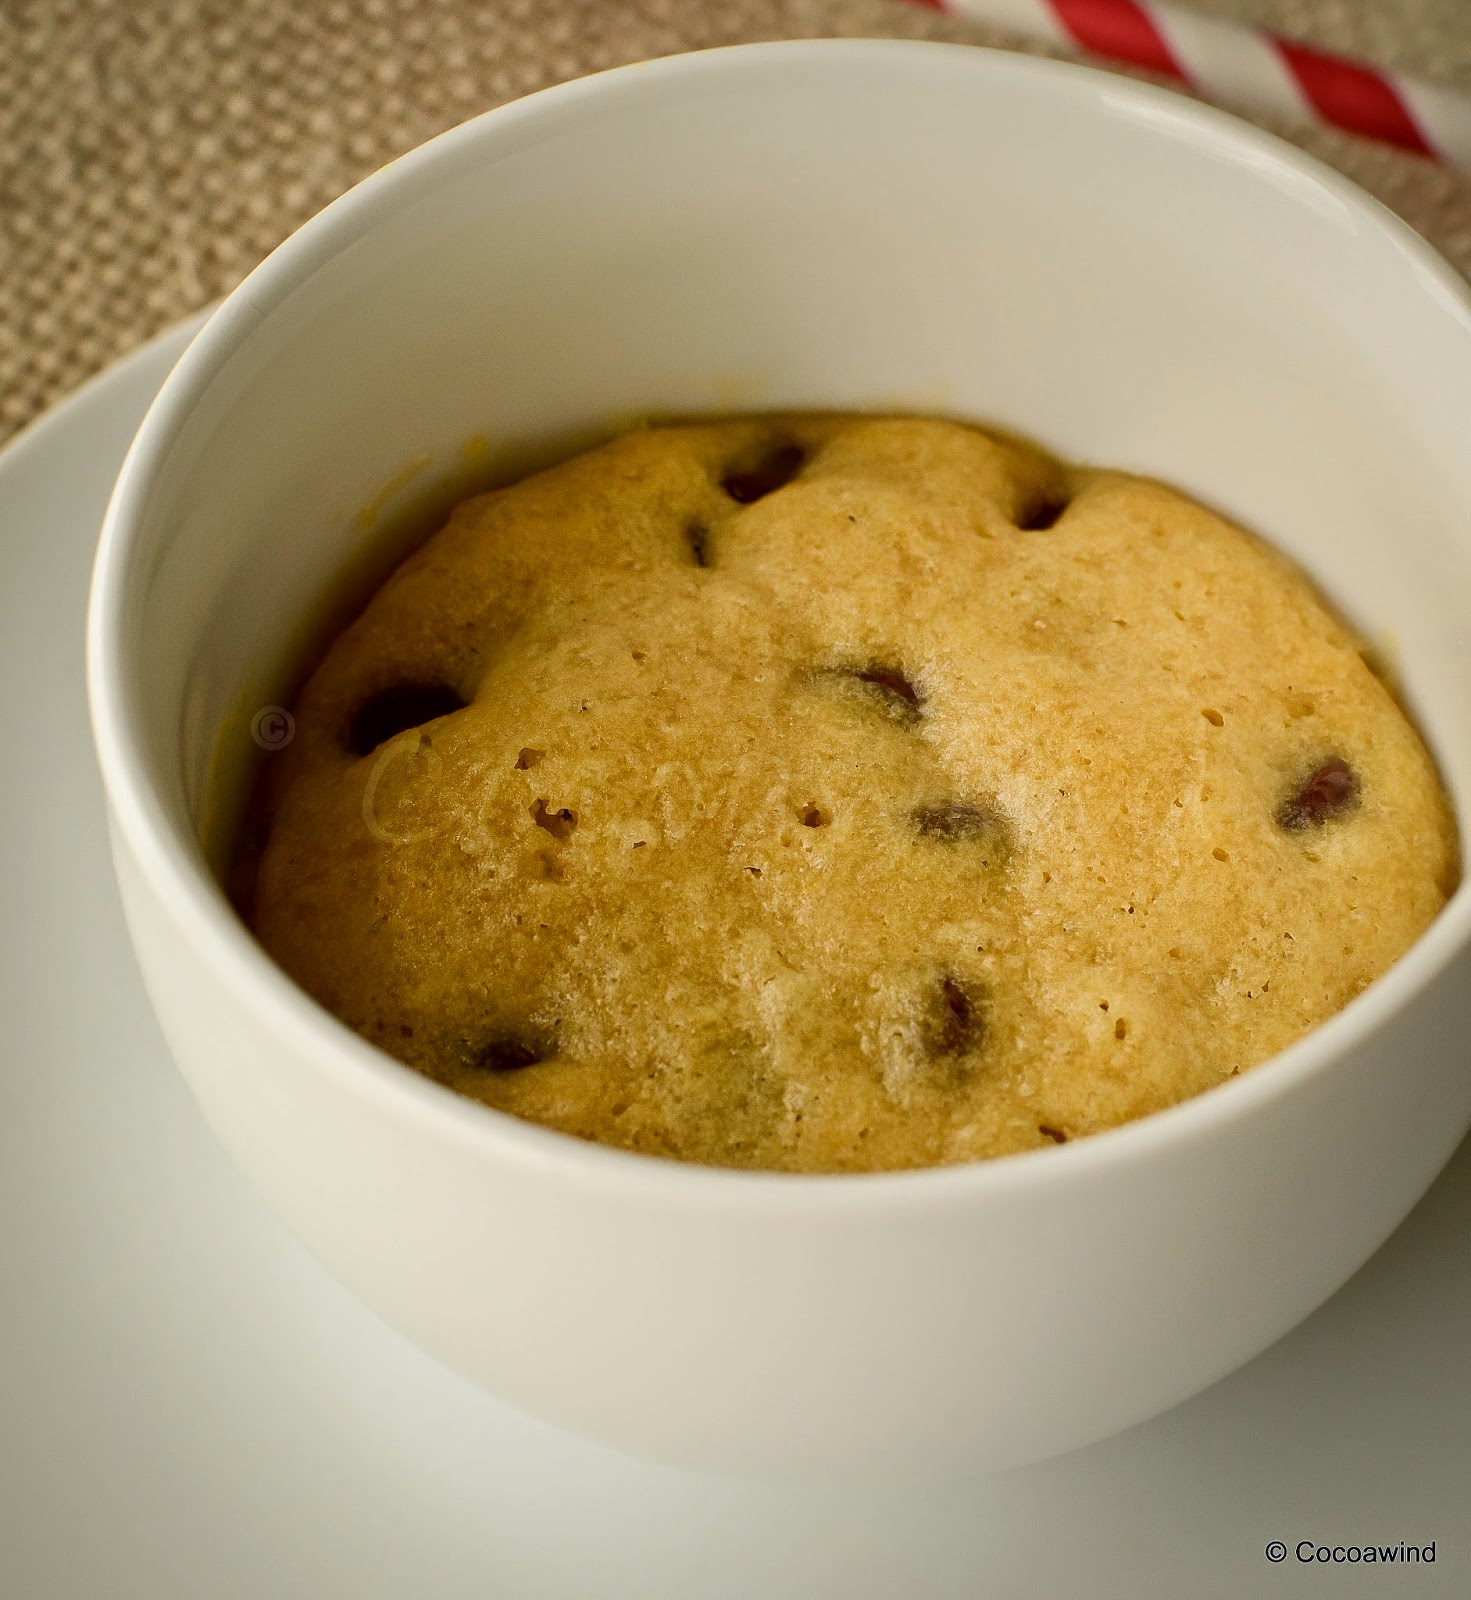 One Minute Cookie in a Cup